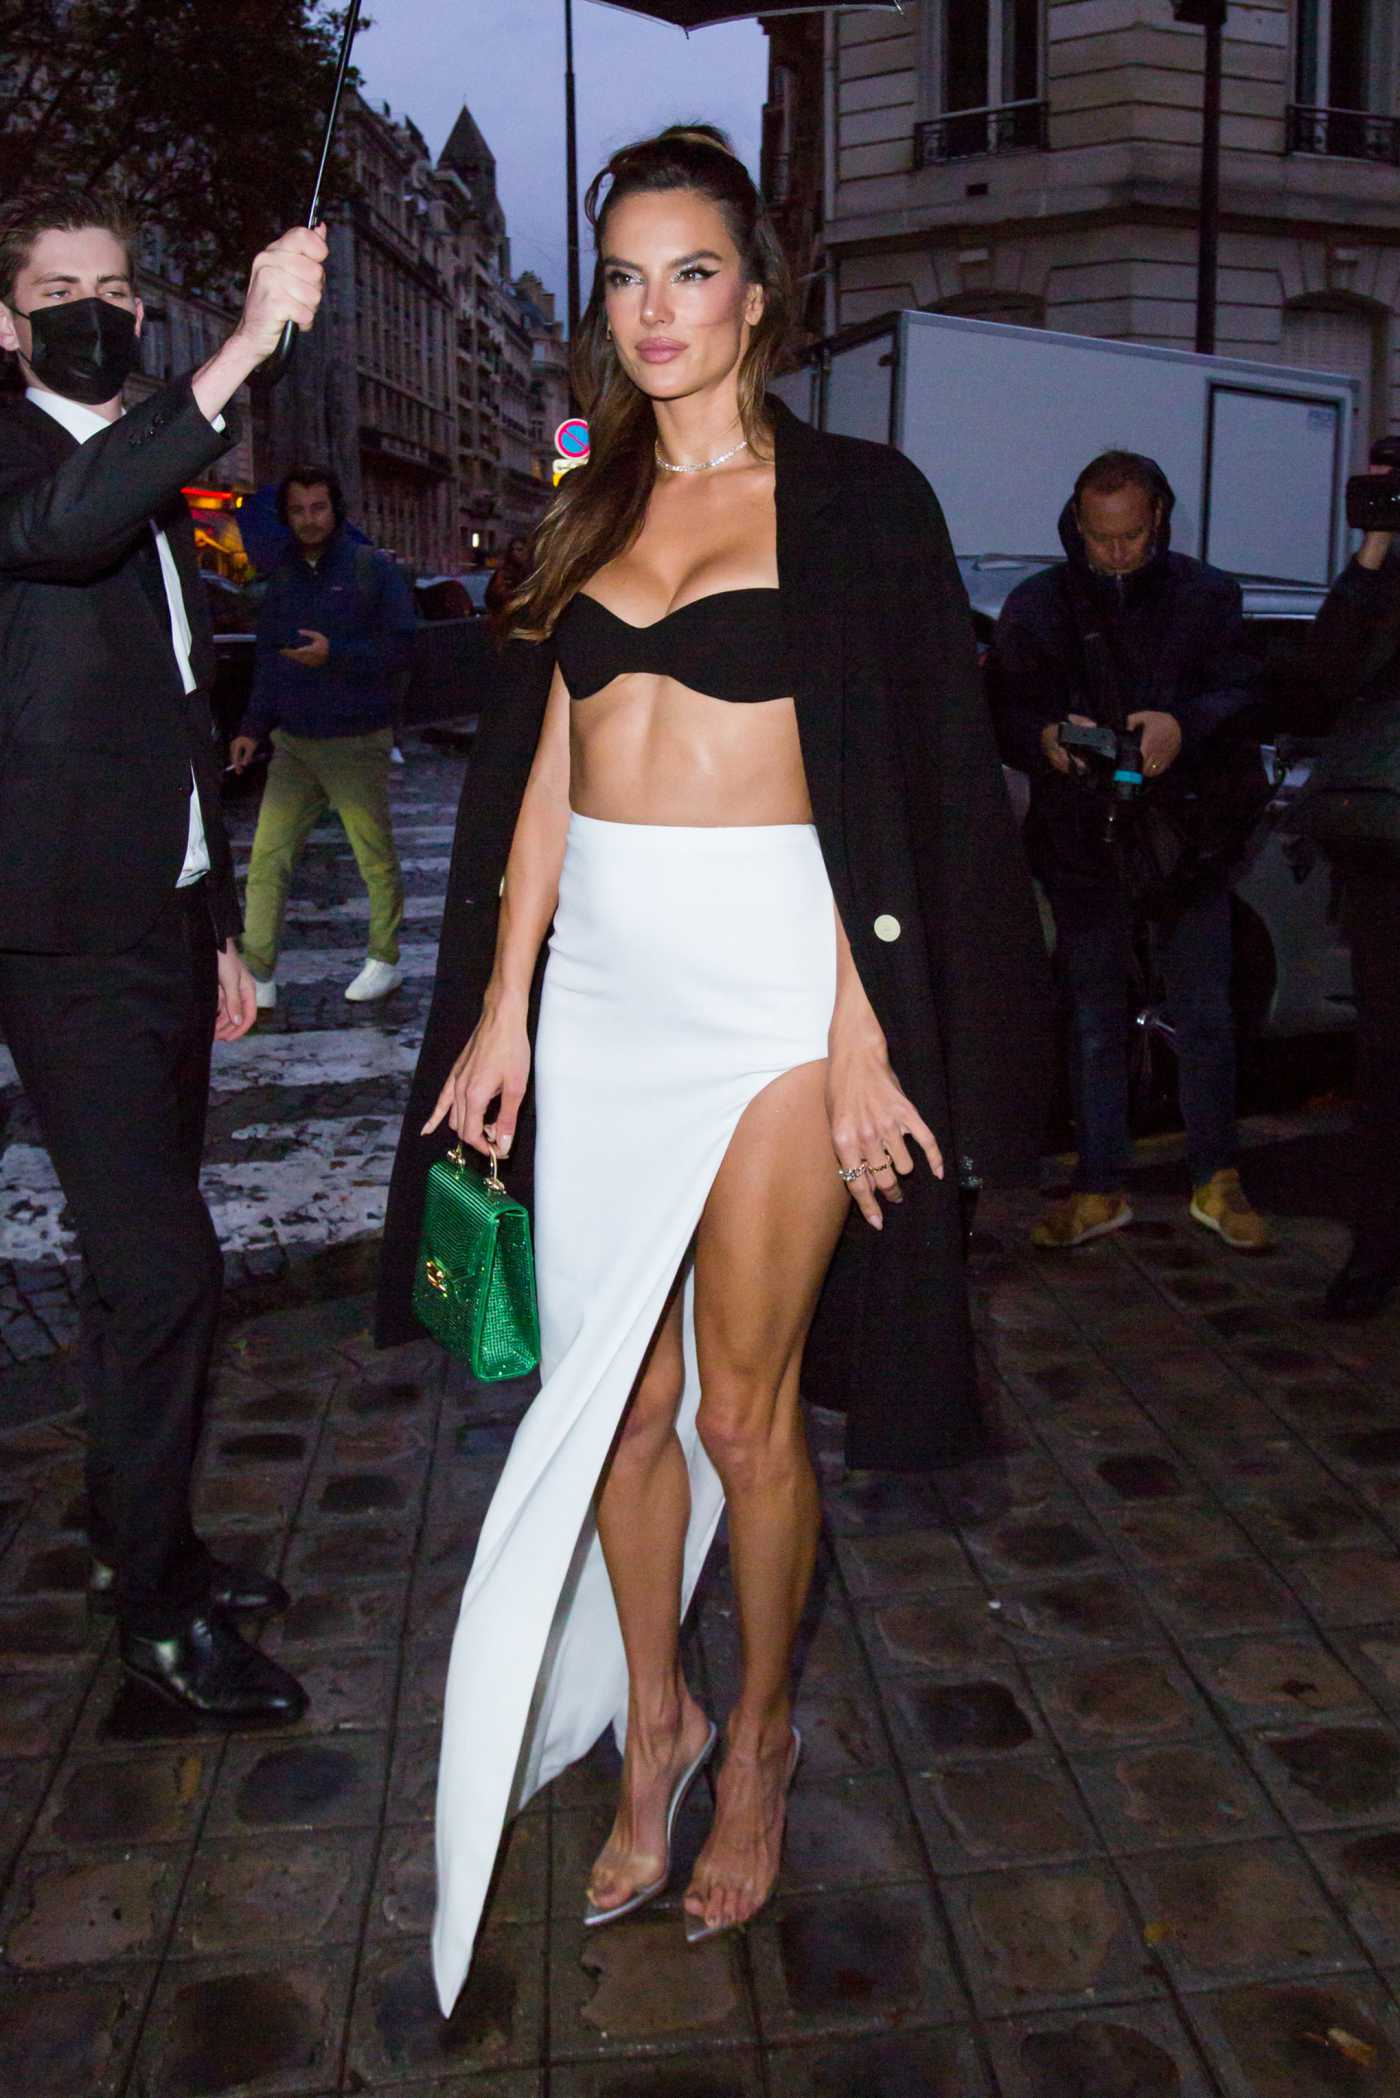 Alessandra Ambrosio Arrives at the Vogue Paris Celebrating its 100th Anniversary at the Palais Galliera in Paris 10/01/2021